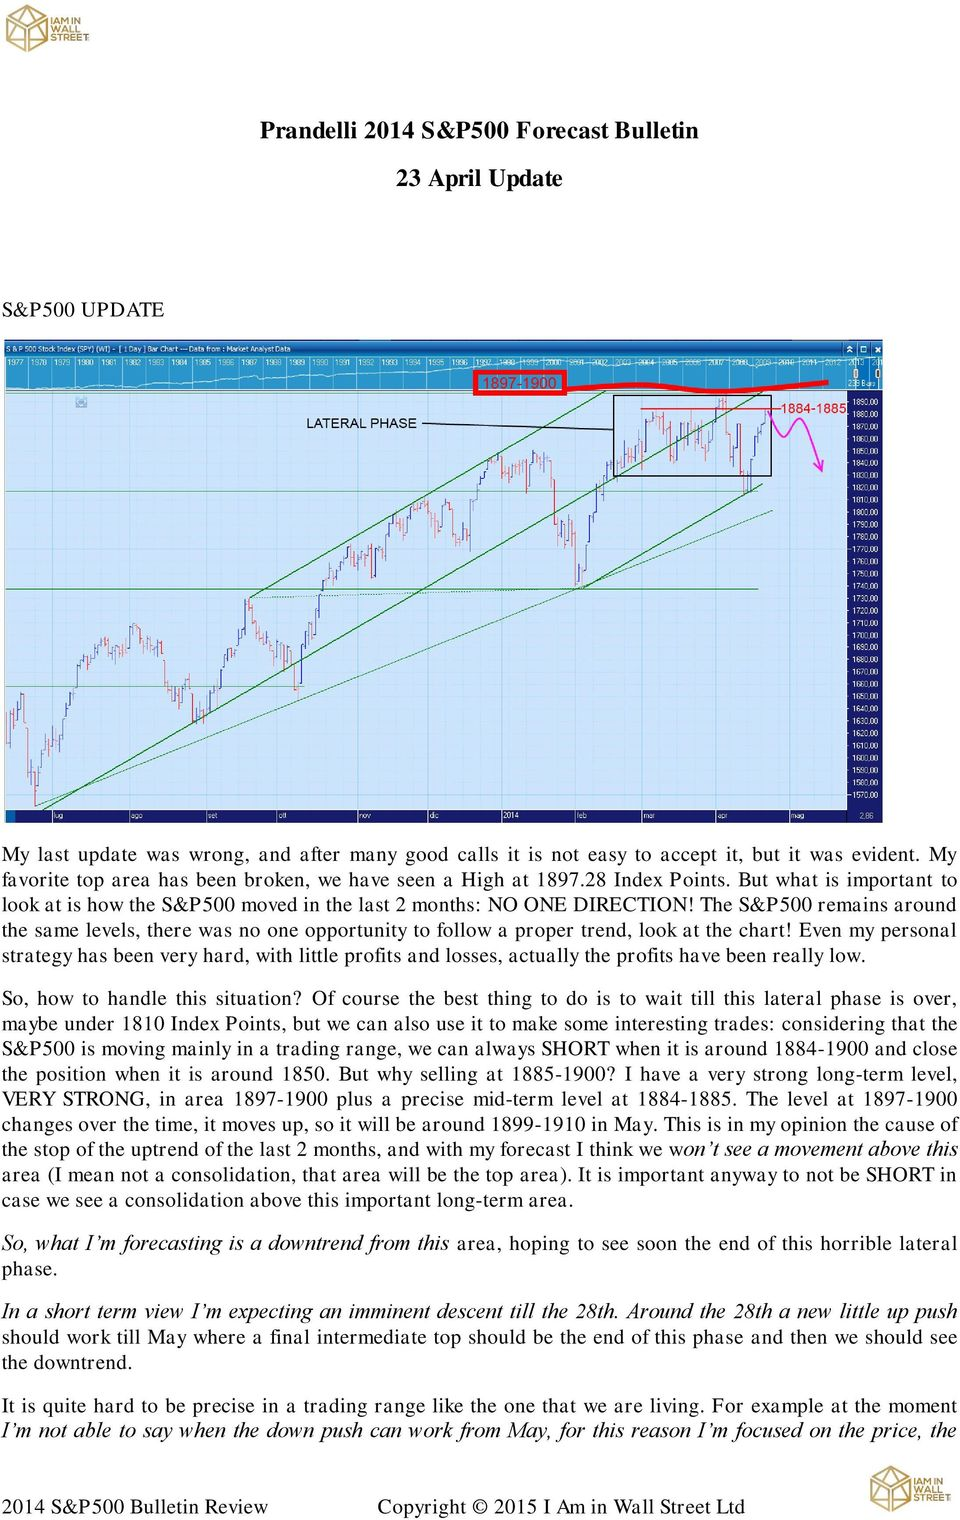 The S&P500 remains around the same levels, there was no one opportunity to follow a proper trend, look at the chart!